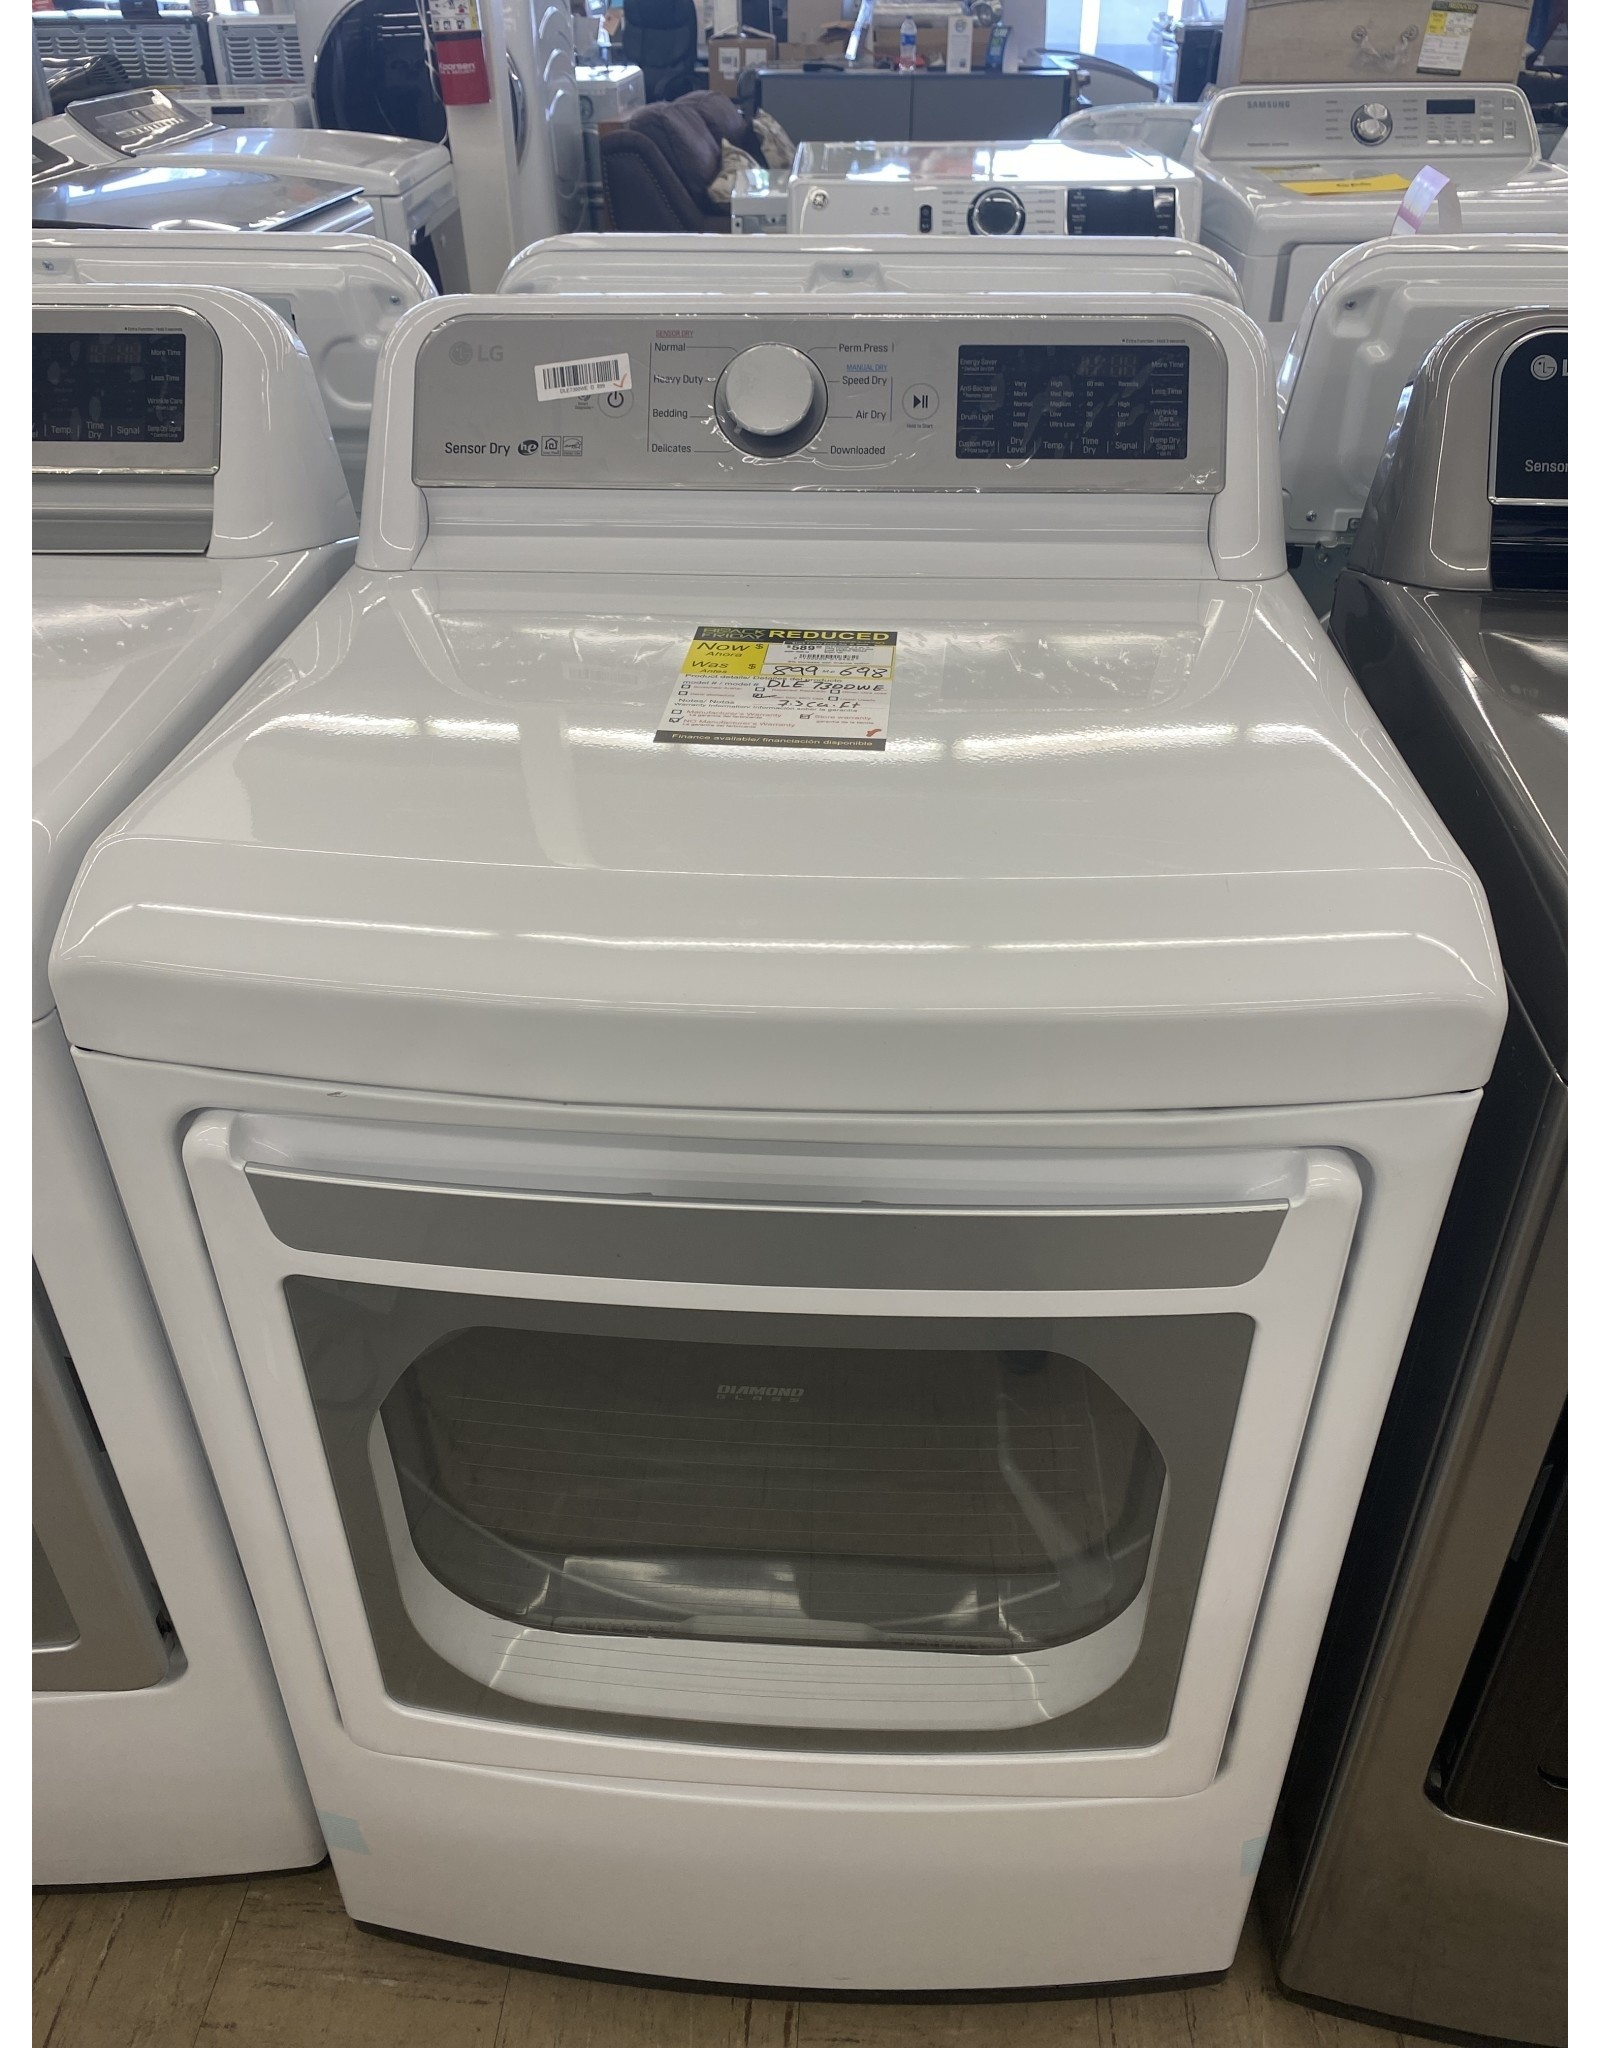 LG Electronics DLEX7800WE 7.3 cu. ft. Ultra Large Smart Front Load Electric Dryer with EasyLoad Door, TurboSteam, and Wi-Fi Enabled in White